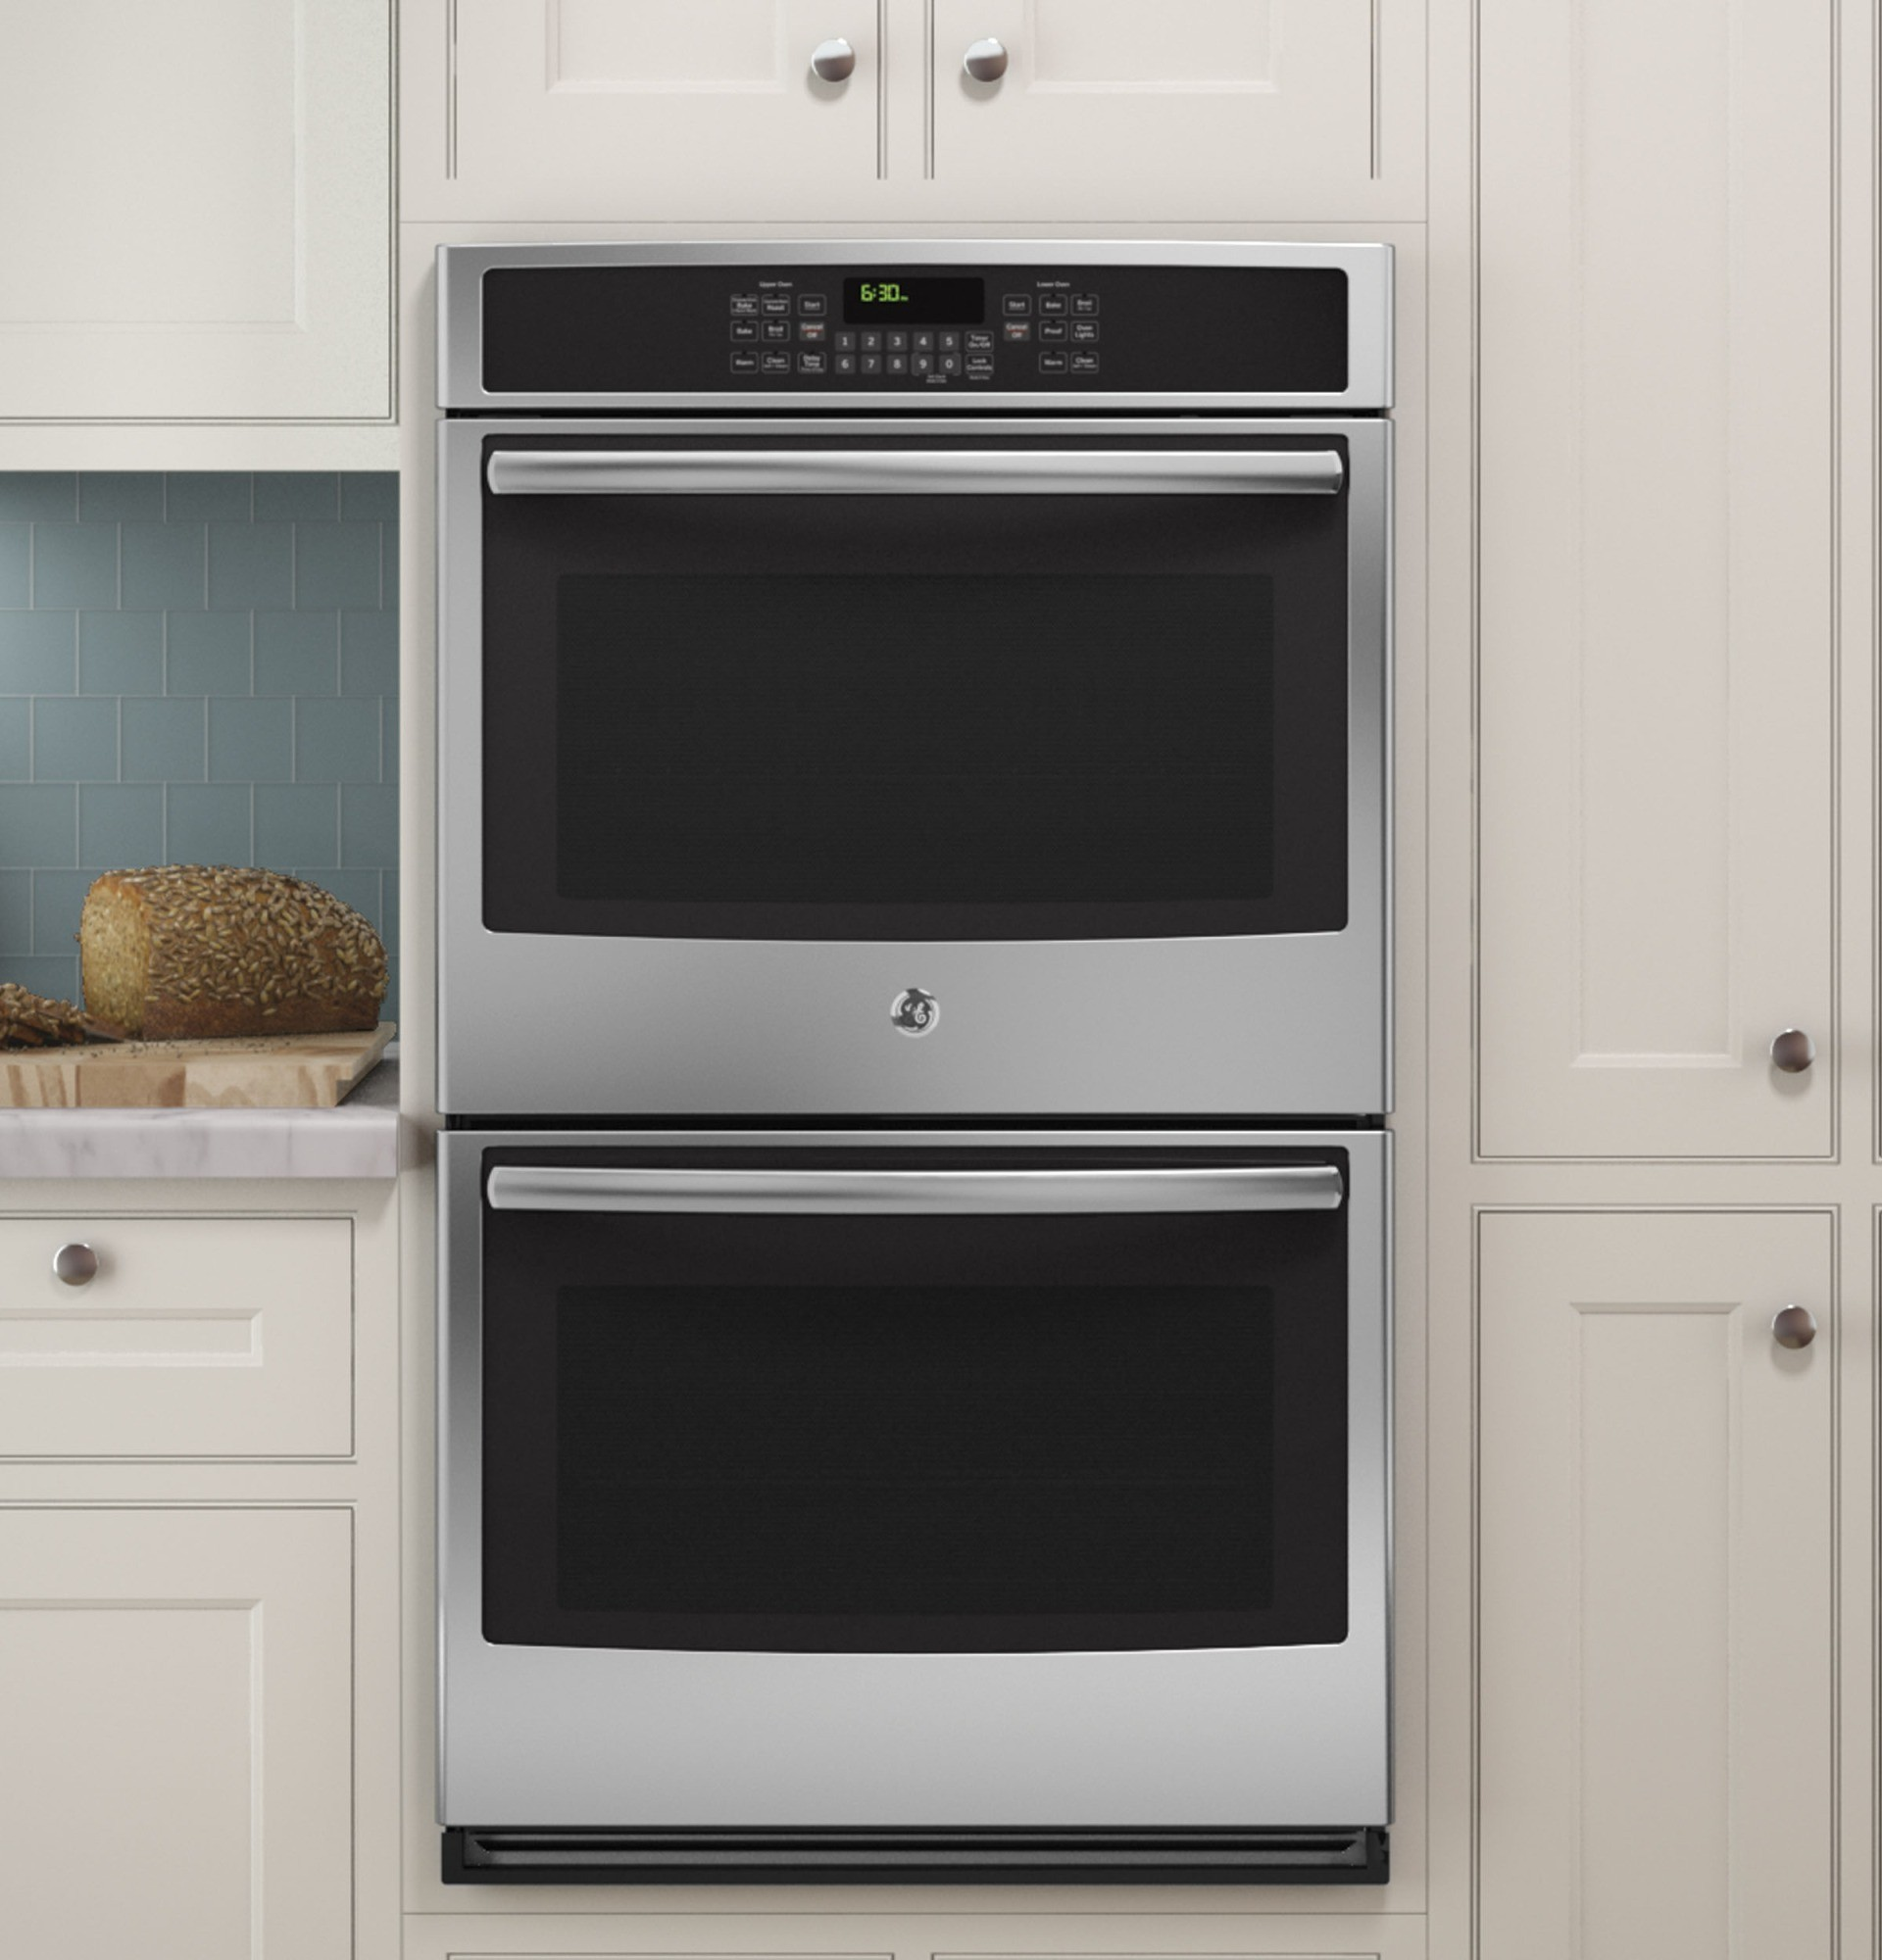 Jt5500sfss Ge 30 Quot Built In Double Wall Oven With